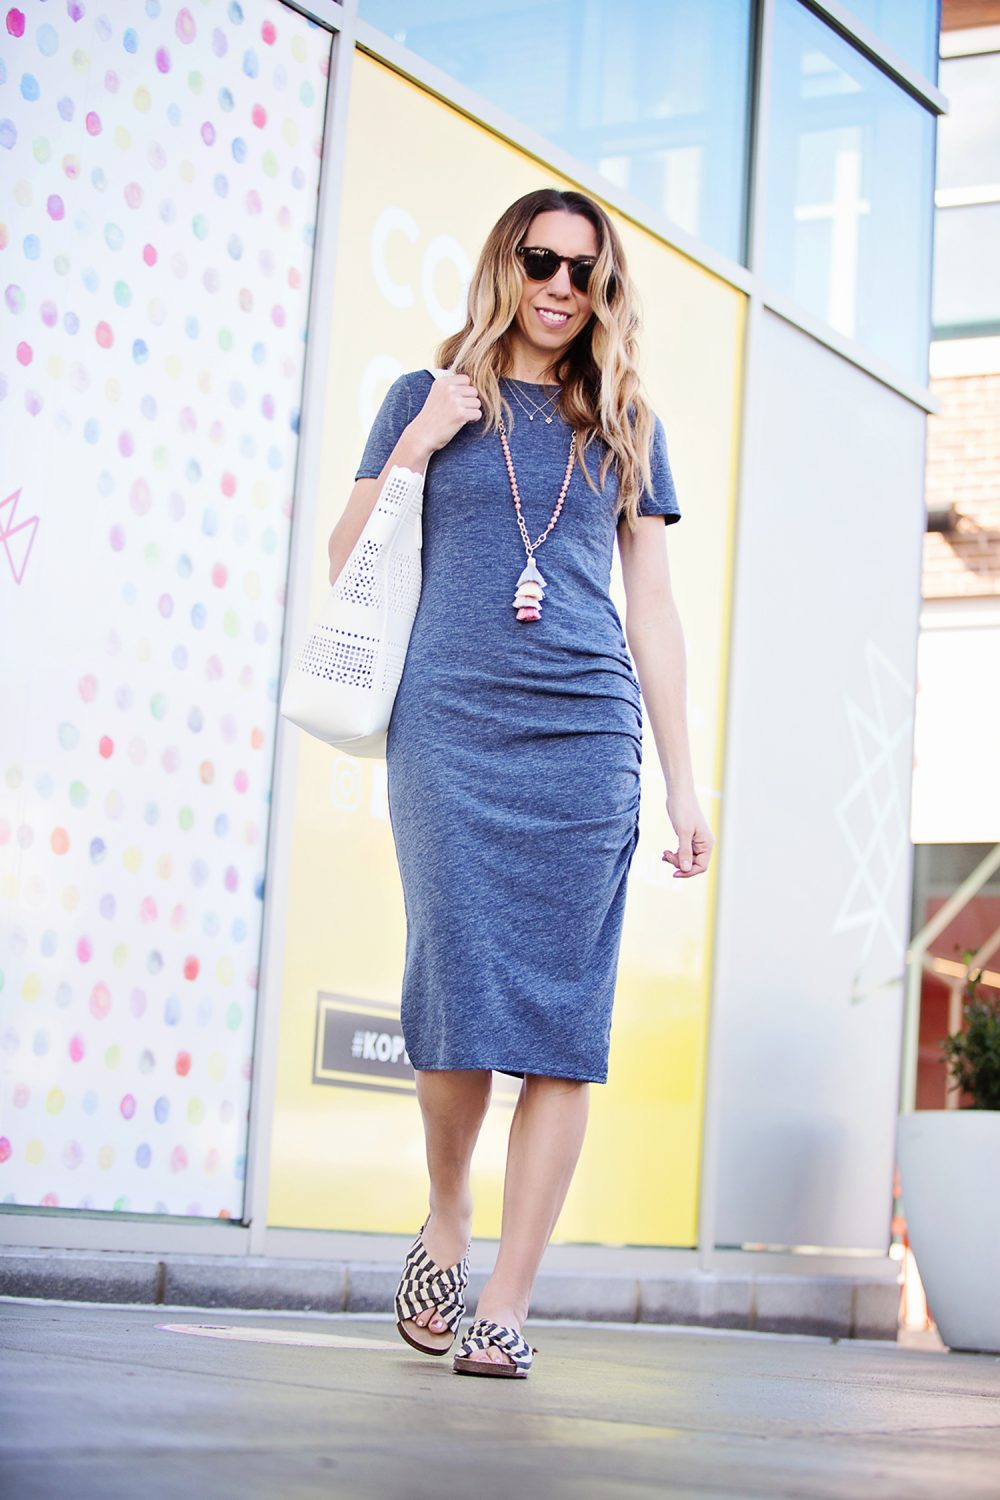 The Motherchic wearing side ruched body con dress